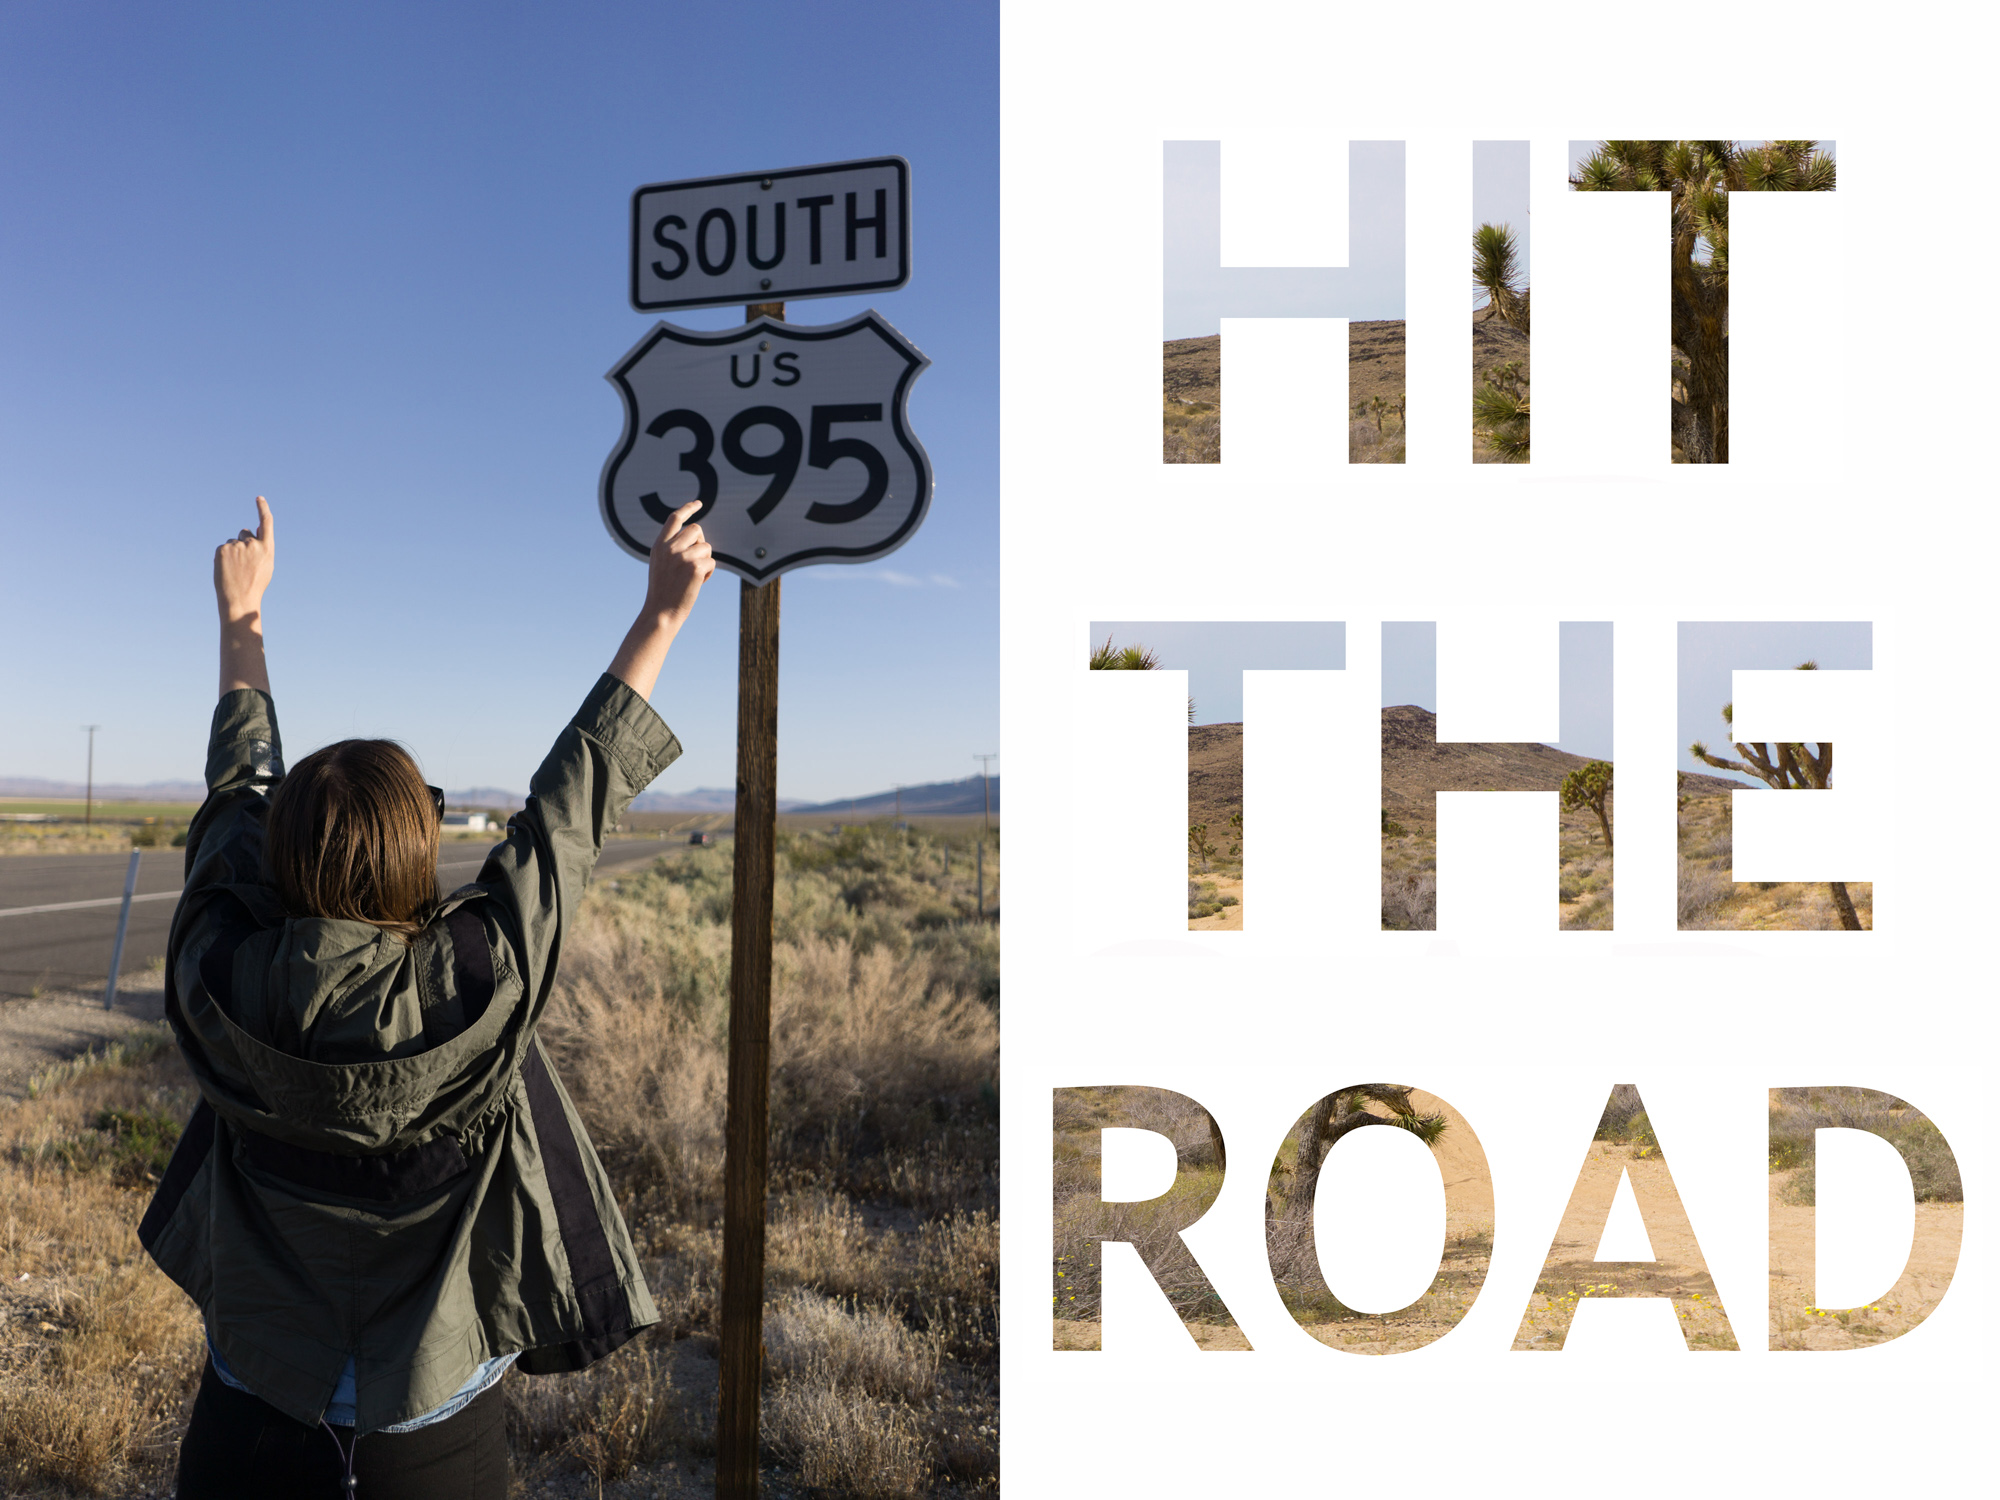 California Road Trip Guide | USA Road Trip Tips | Sharing the travel route and great places to visit on a San Francisco to Palm Springs road trip.